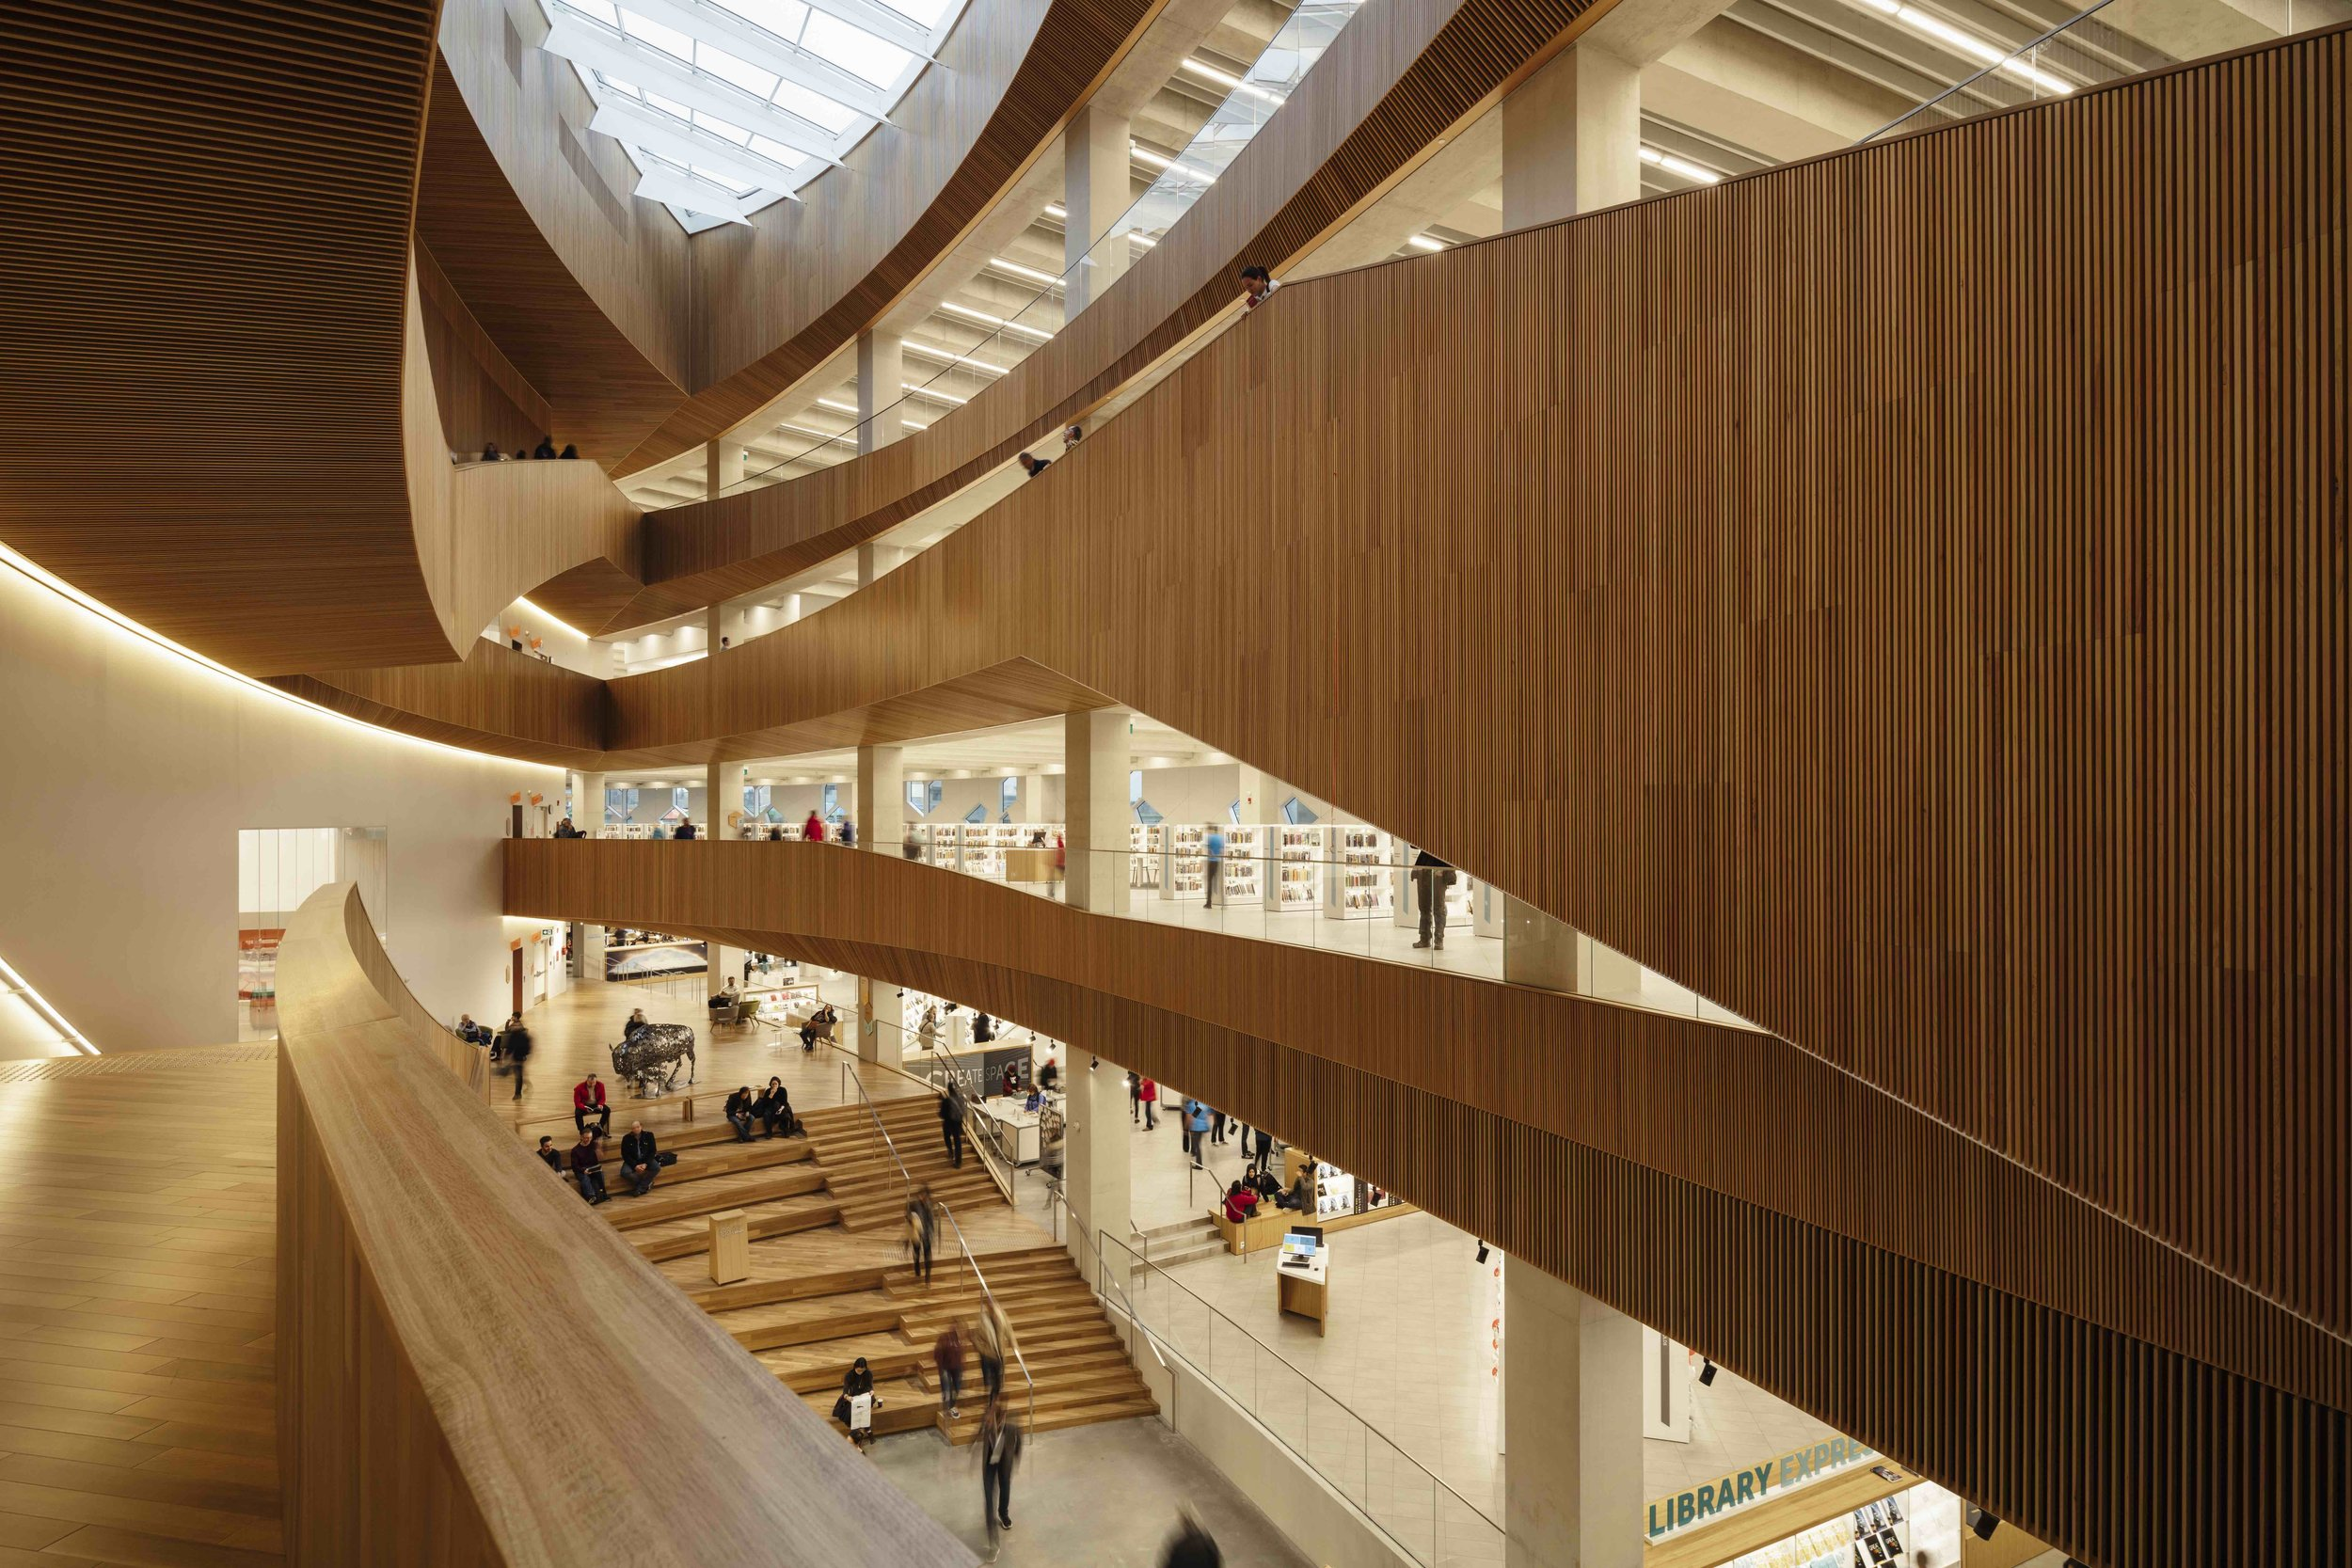 The oculus and central atrium allows natural light deep into the building. Photo by Michael Grimm